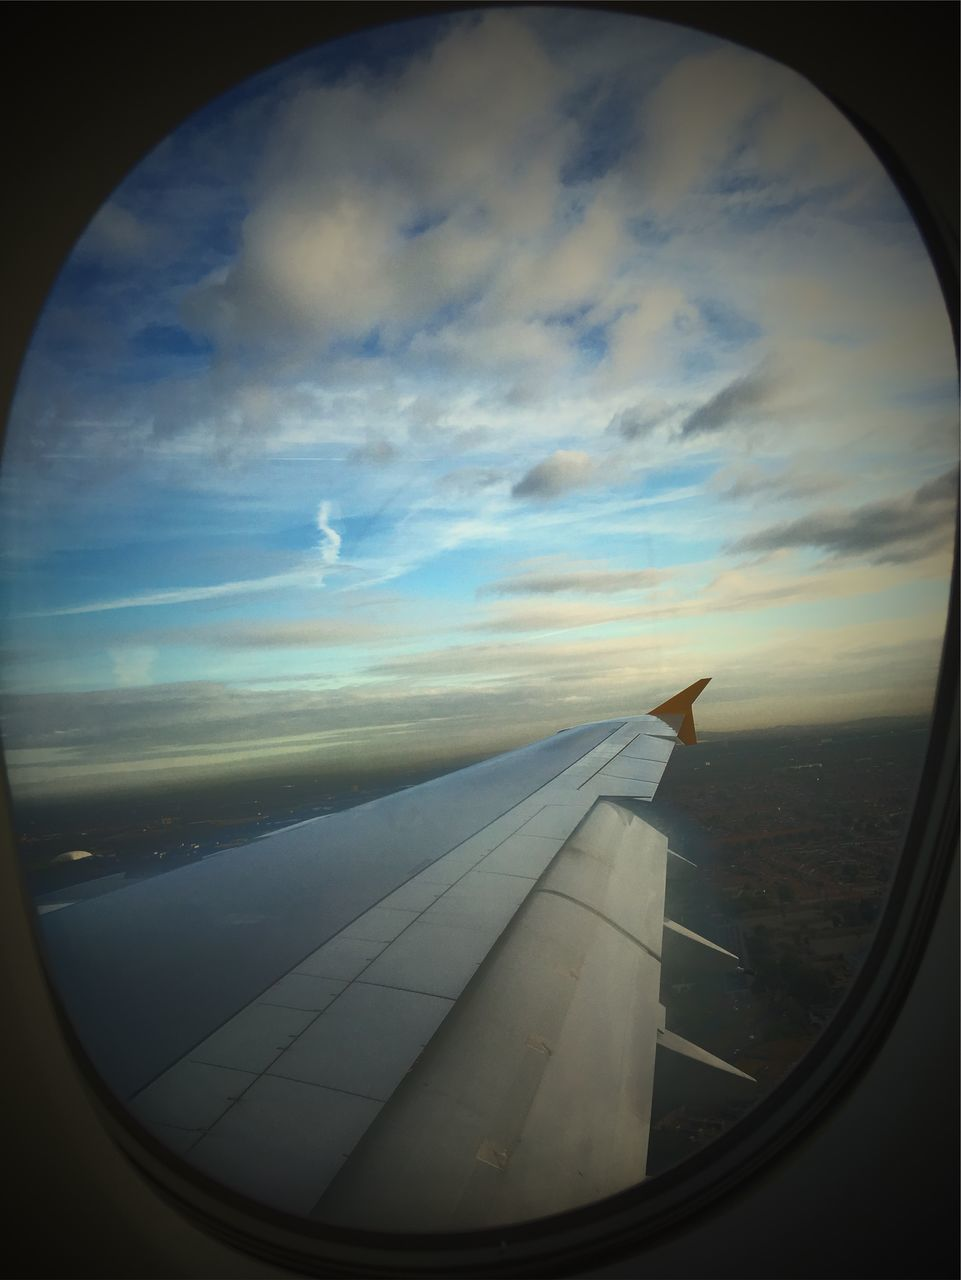 airplane, journey, sky, transportation, cloud - sky, airplane wing, travel, window, air vehicle, no people, nature, flying, mid-air, day, beauty in nature, landscape, scenics, sunset, close-up, outdoors